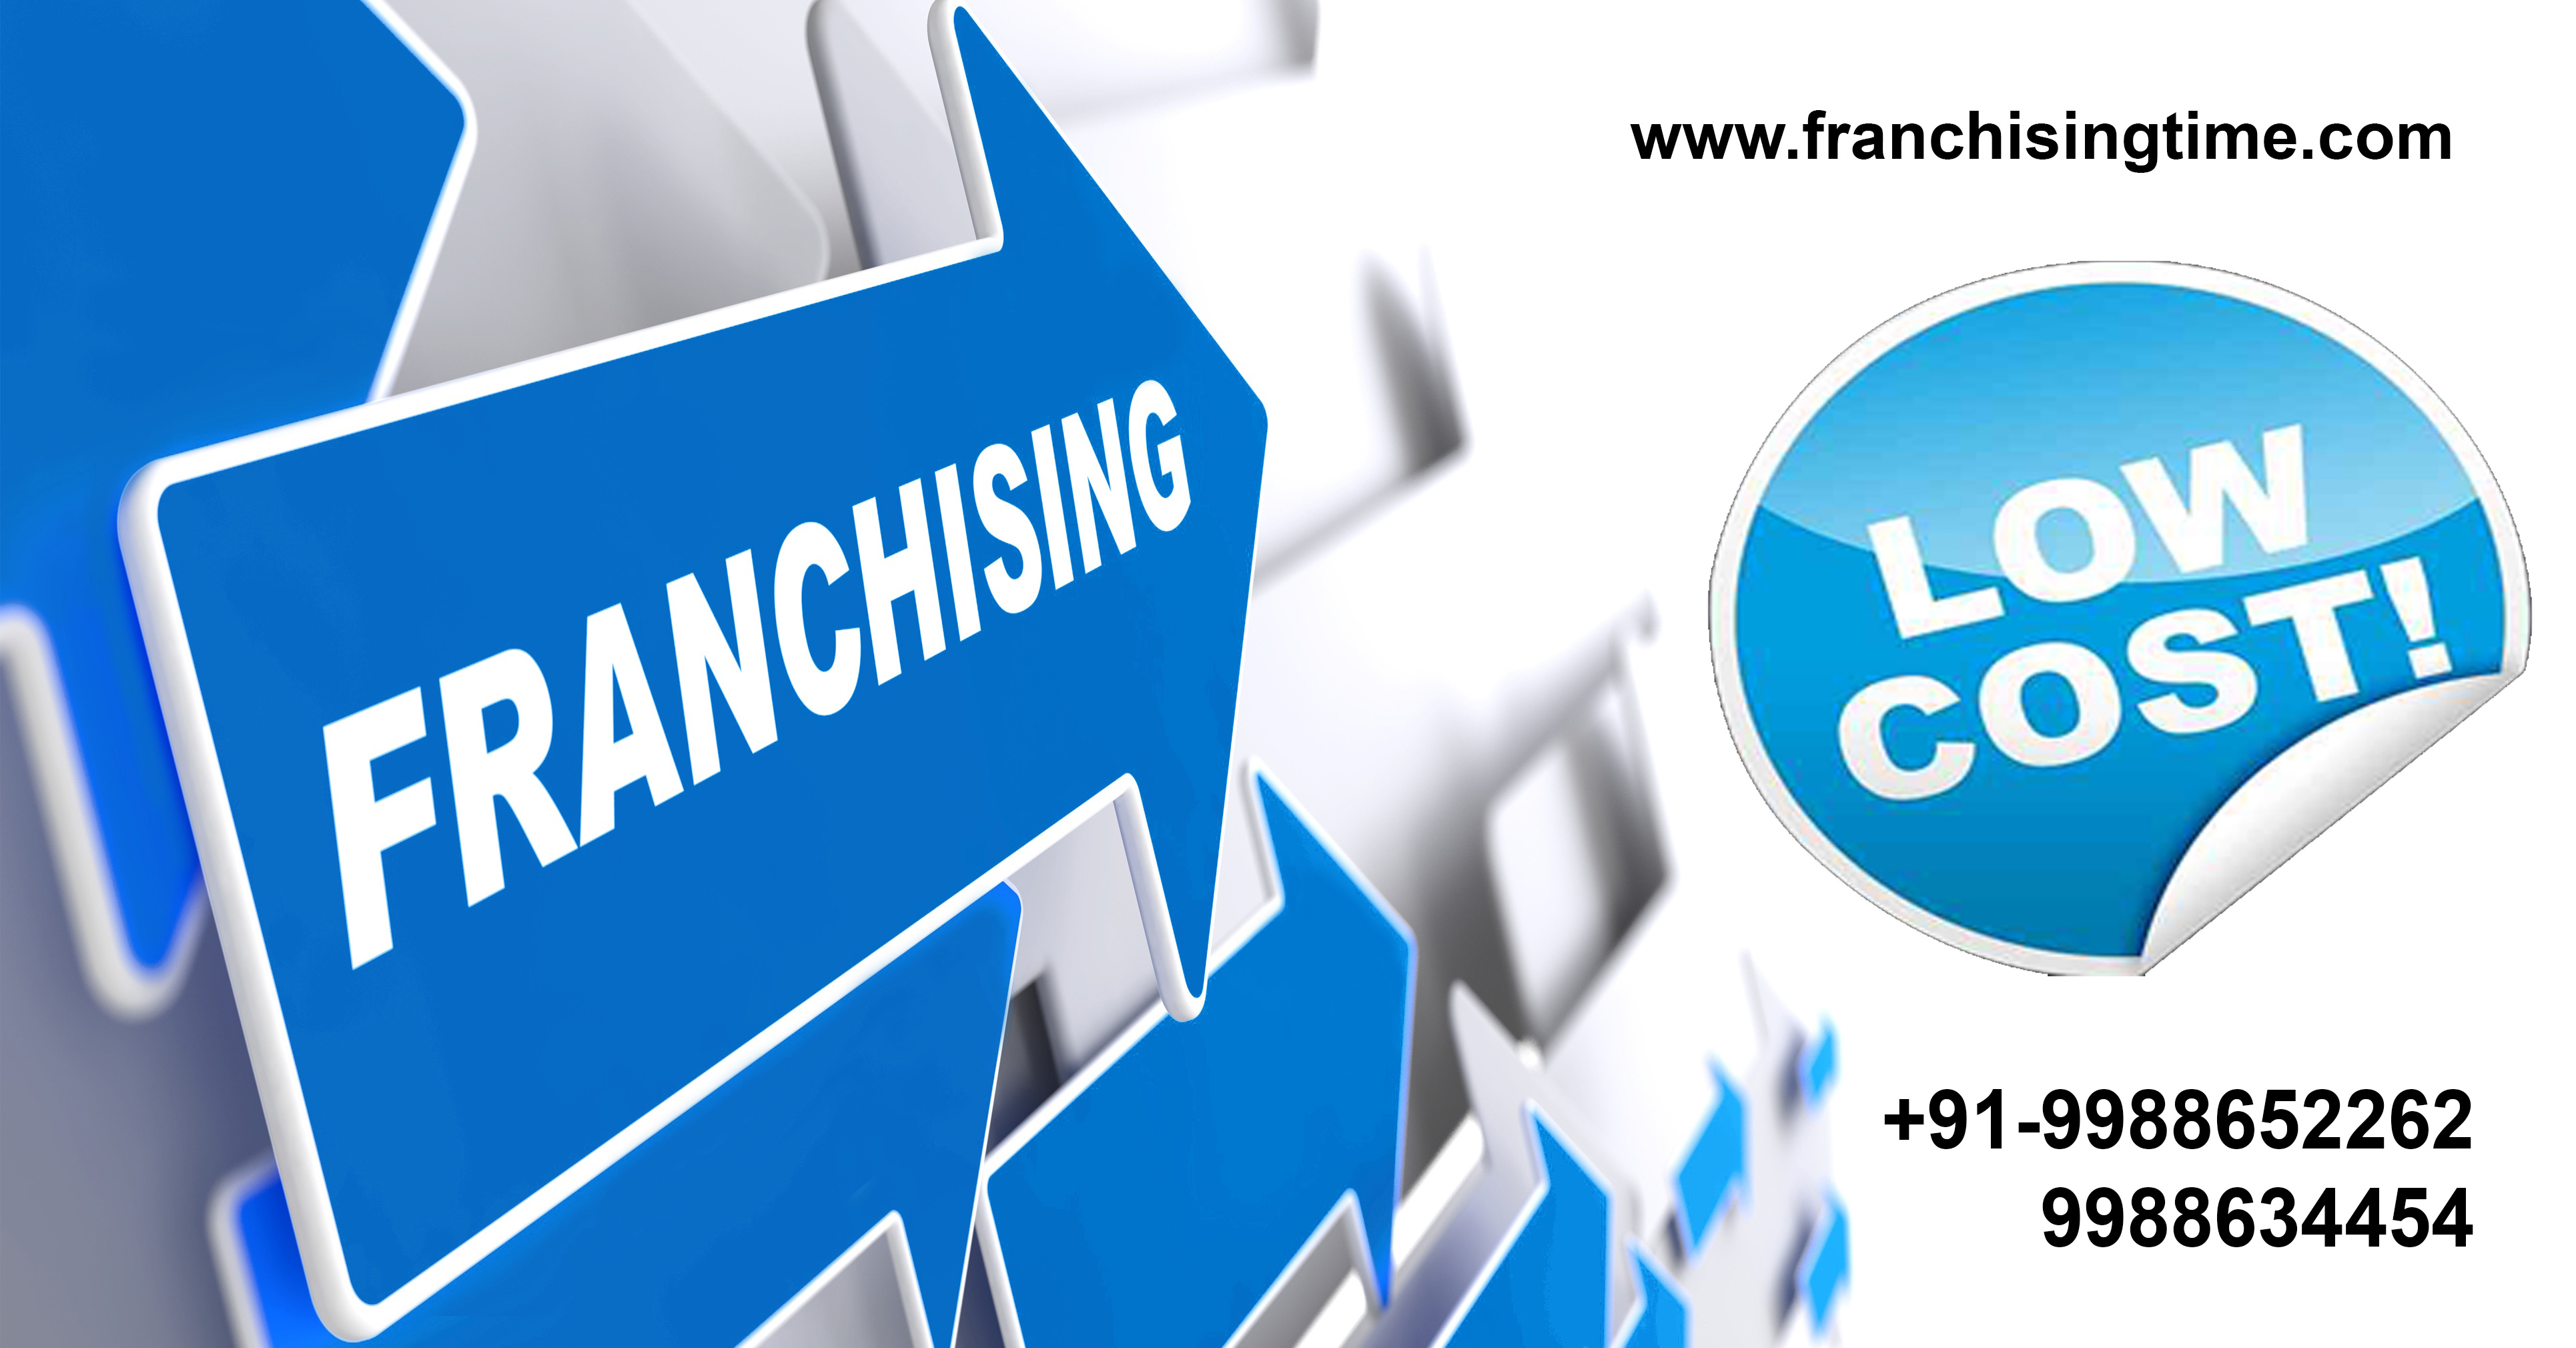 Find Your Best Franchise Opportunities ...